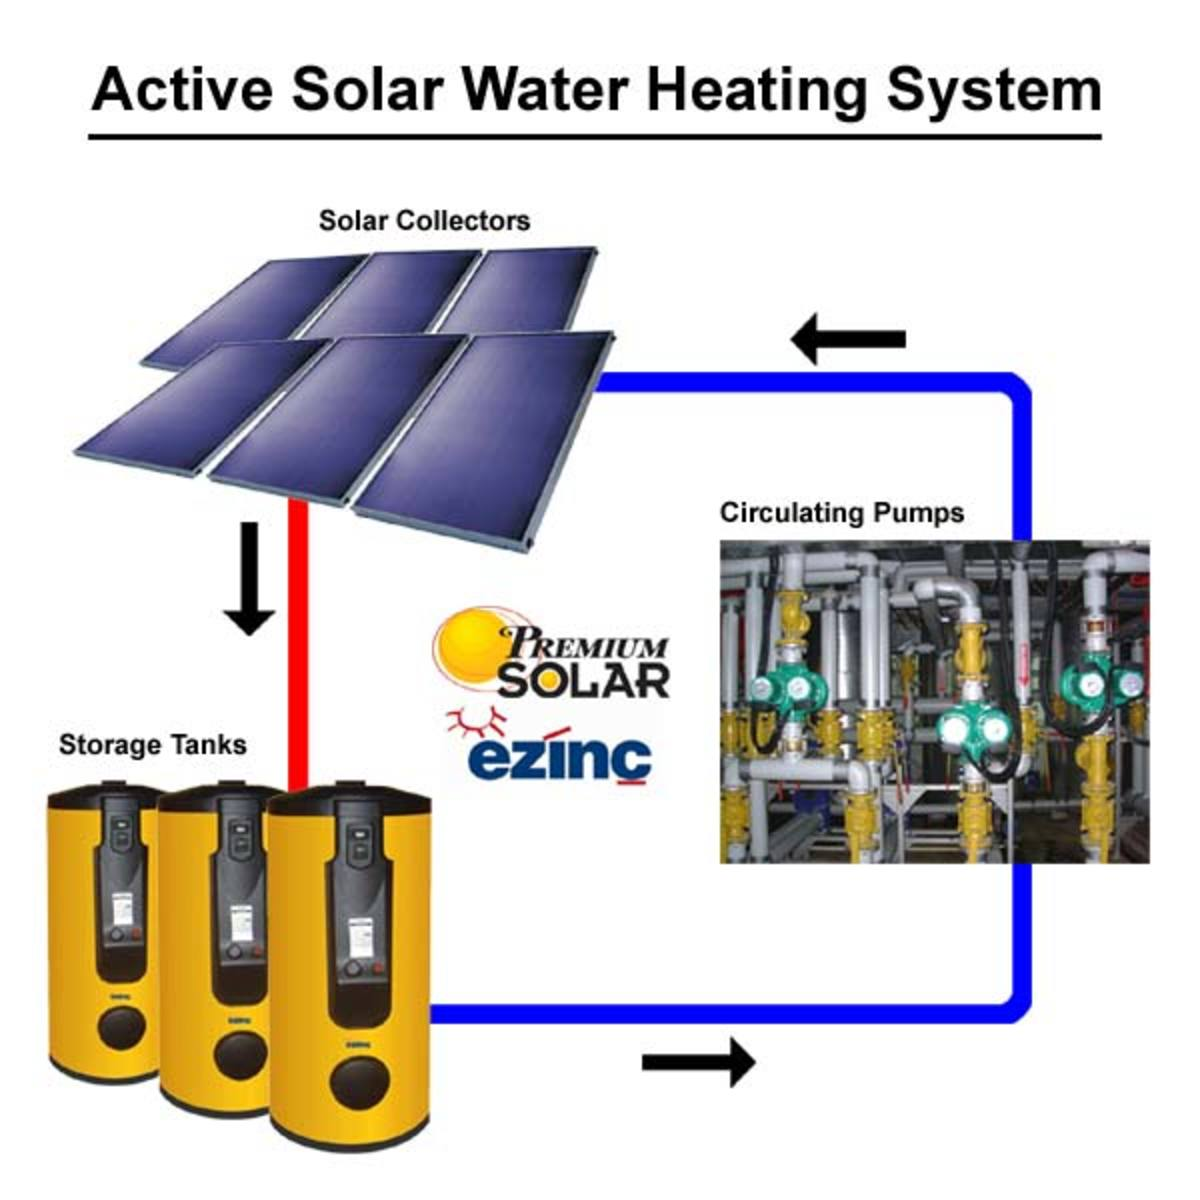 Active water solar heating system - diagram